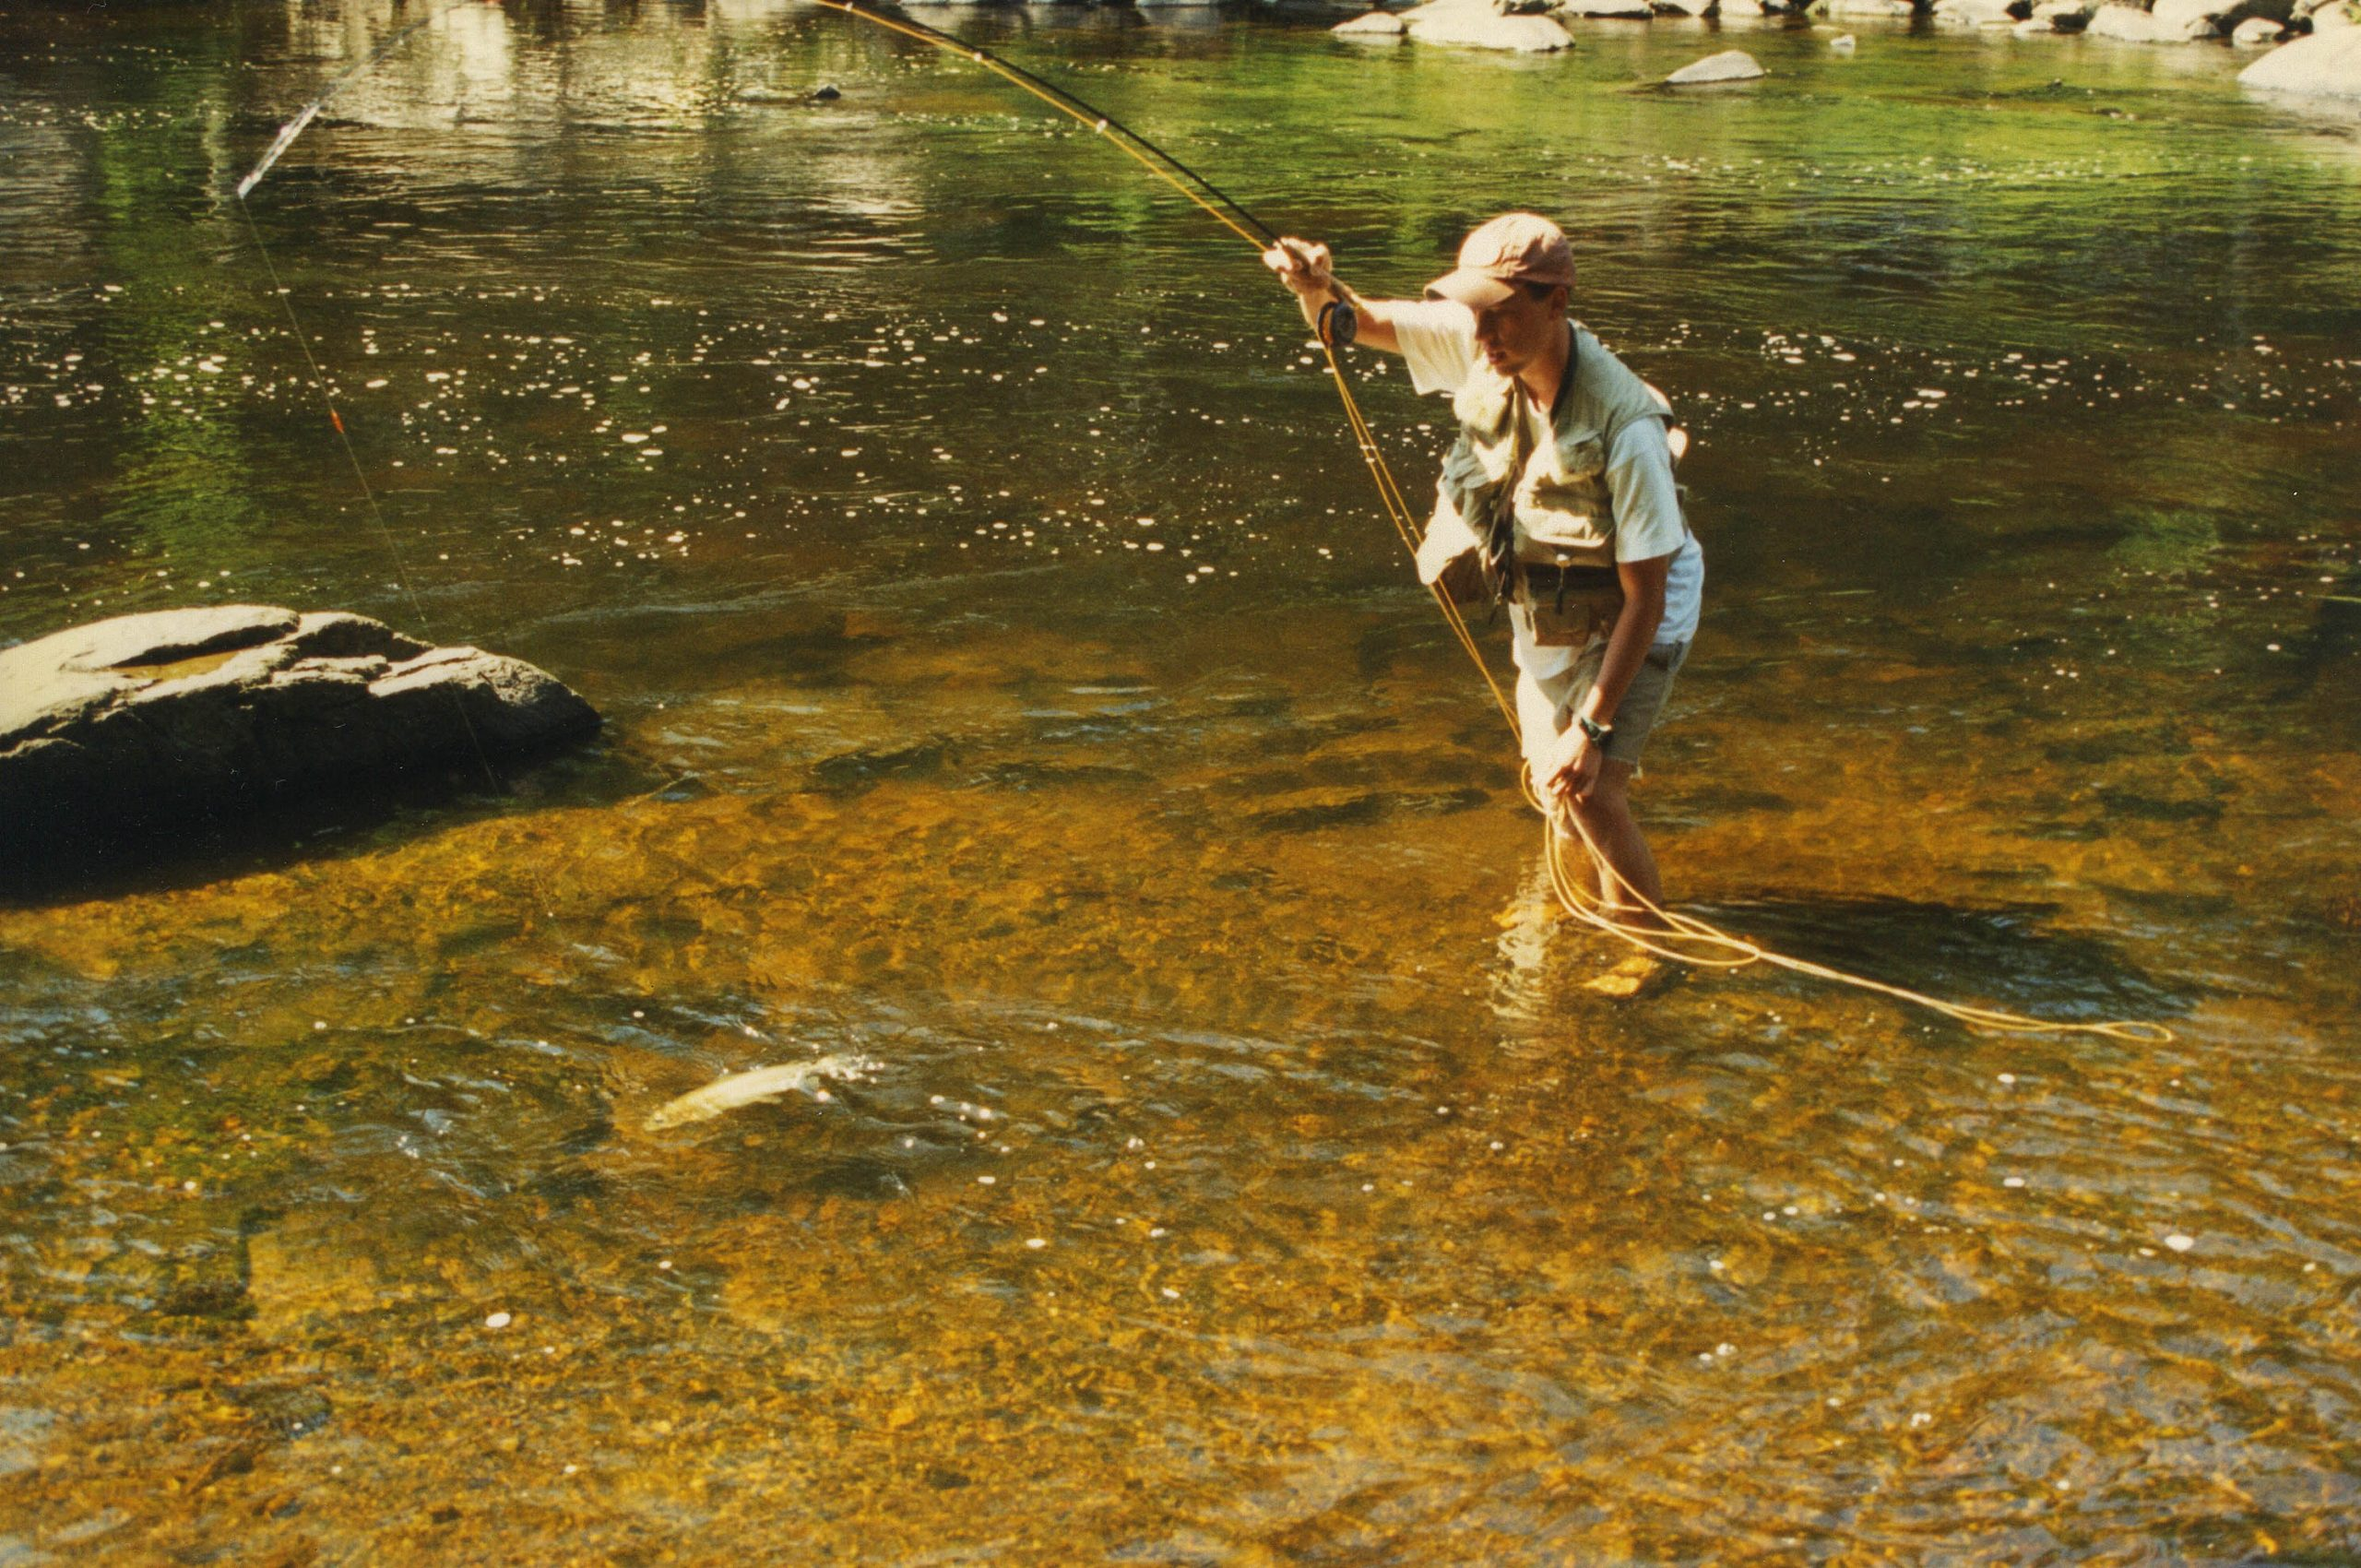 Learning to fly fish the Ausable River in the Adirondack Mountains of New York